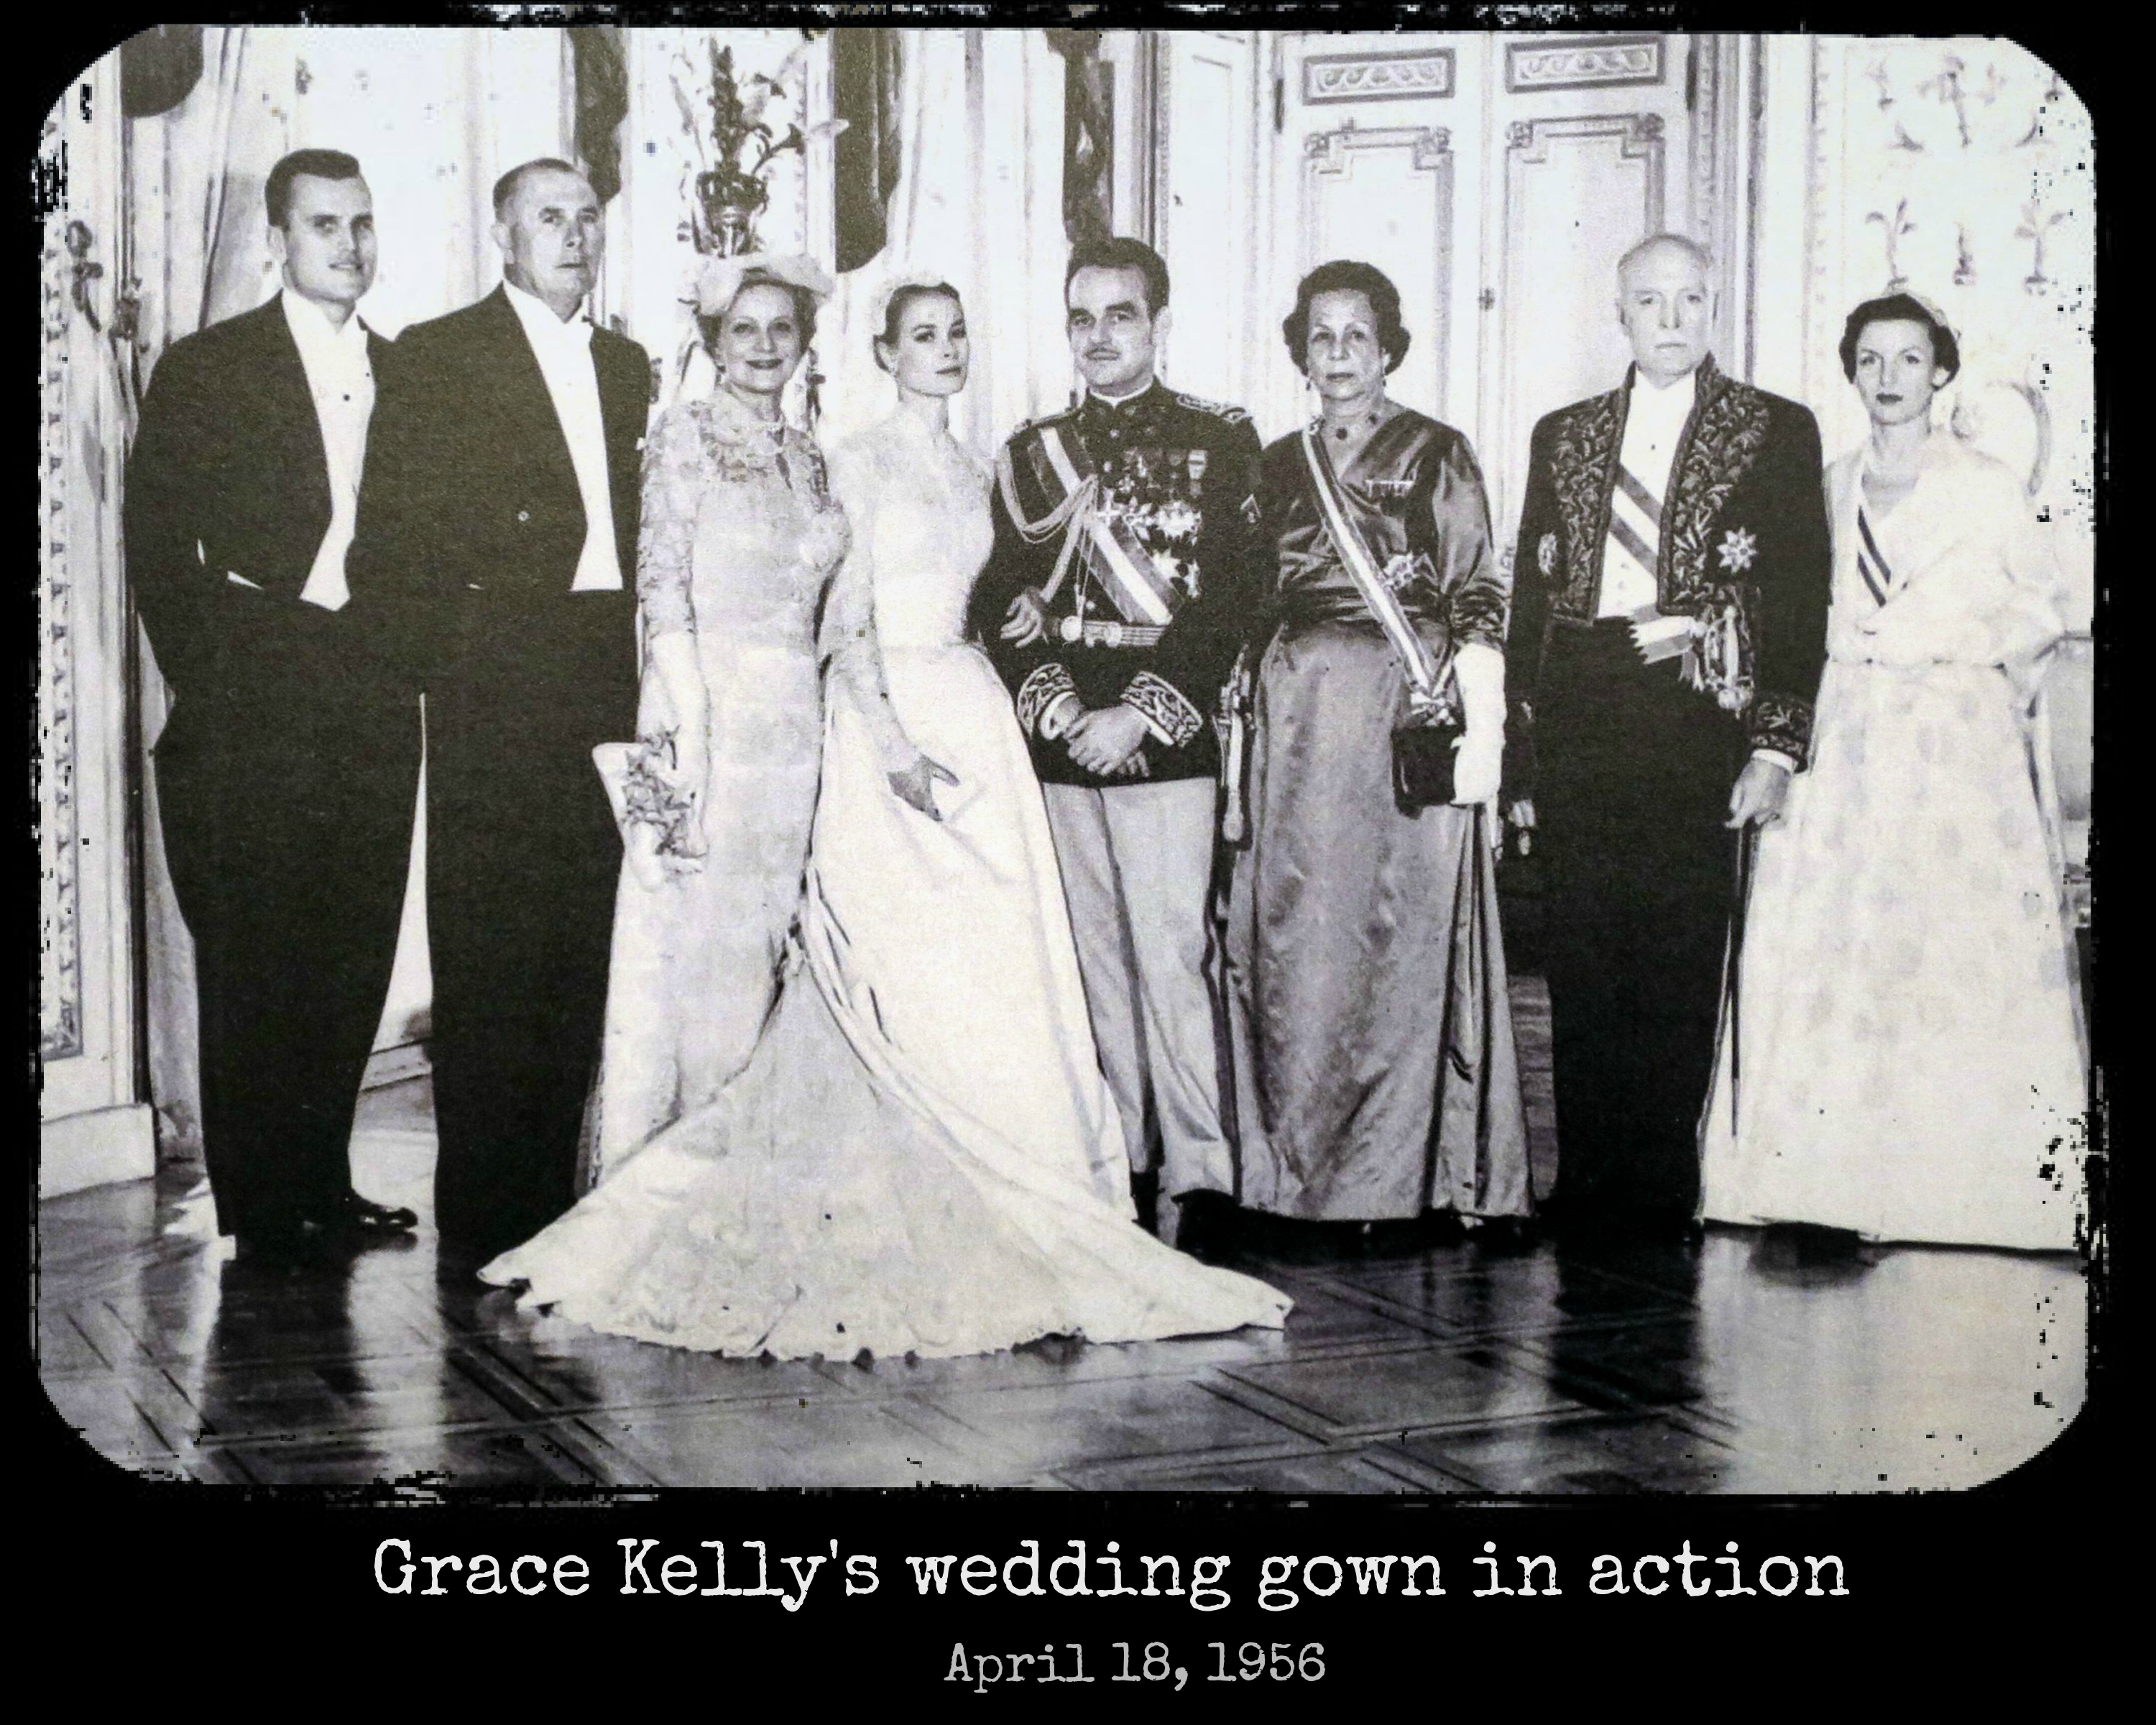 EastFallsLocal UPSTAIRS grace kelly wedding party historic pic RESIZE for FRAME txt